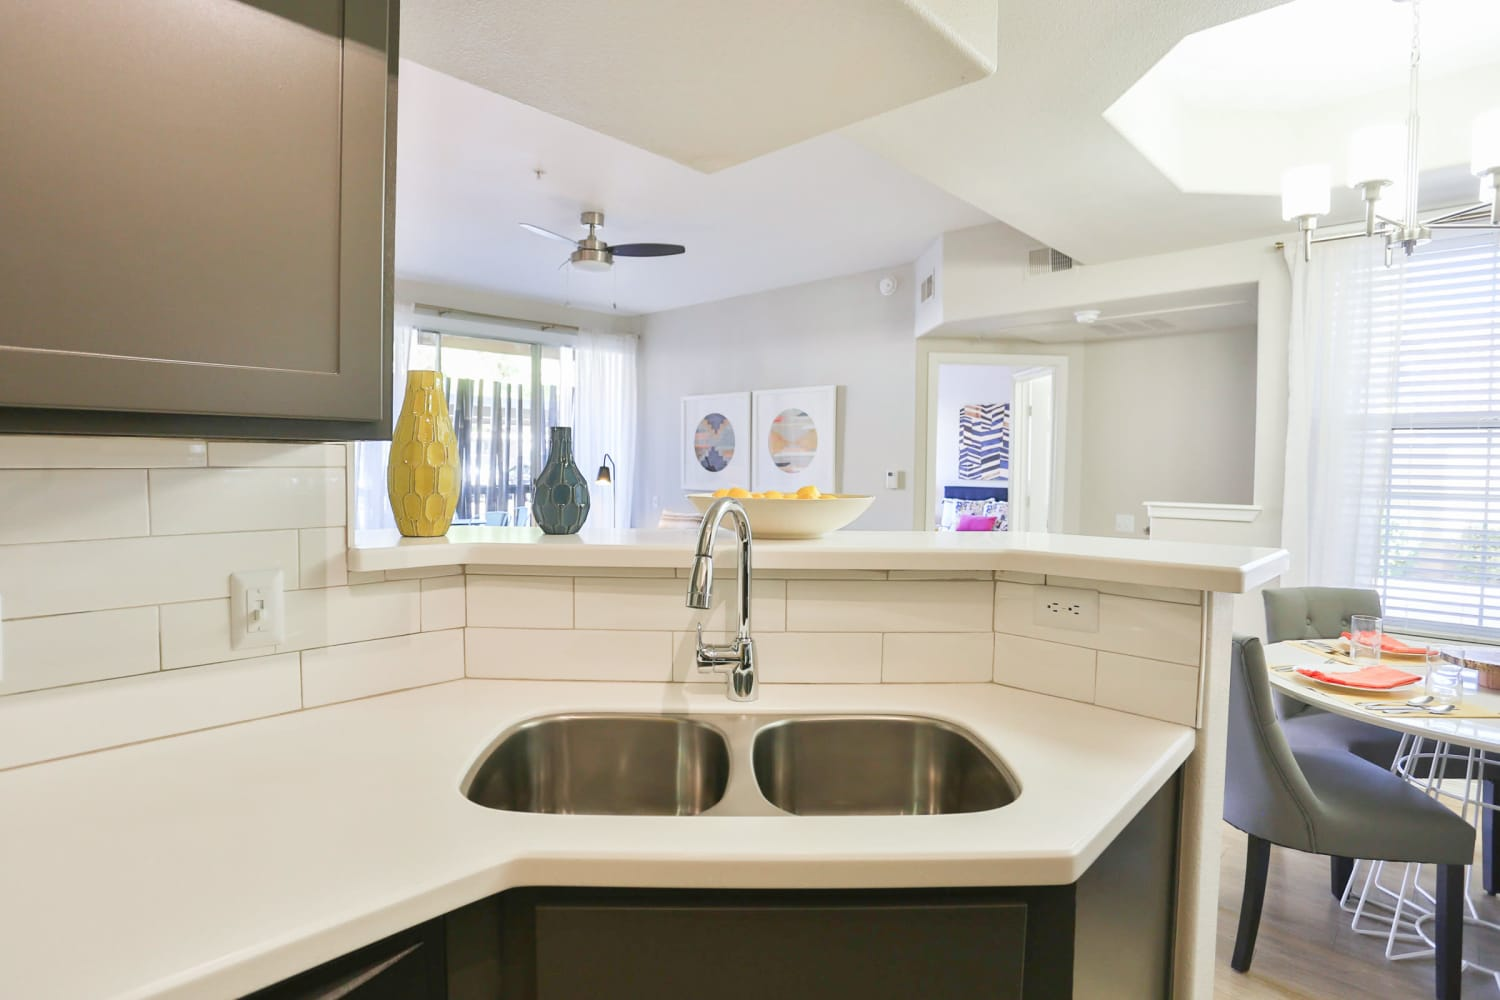 There is ample counter space in the kitchens at Sonoran Vista Apartments in Scottsdale, Arizona